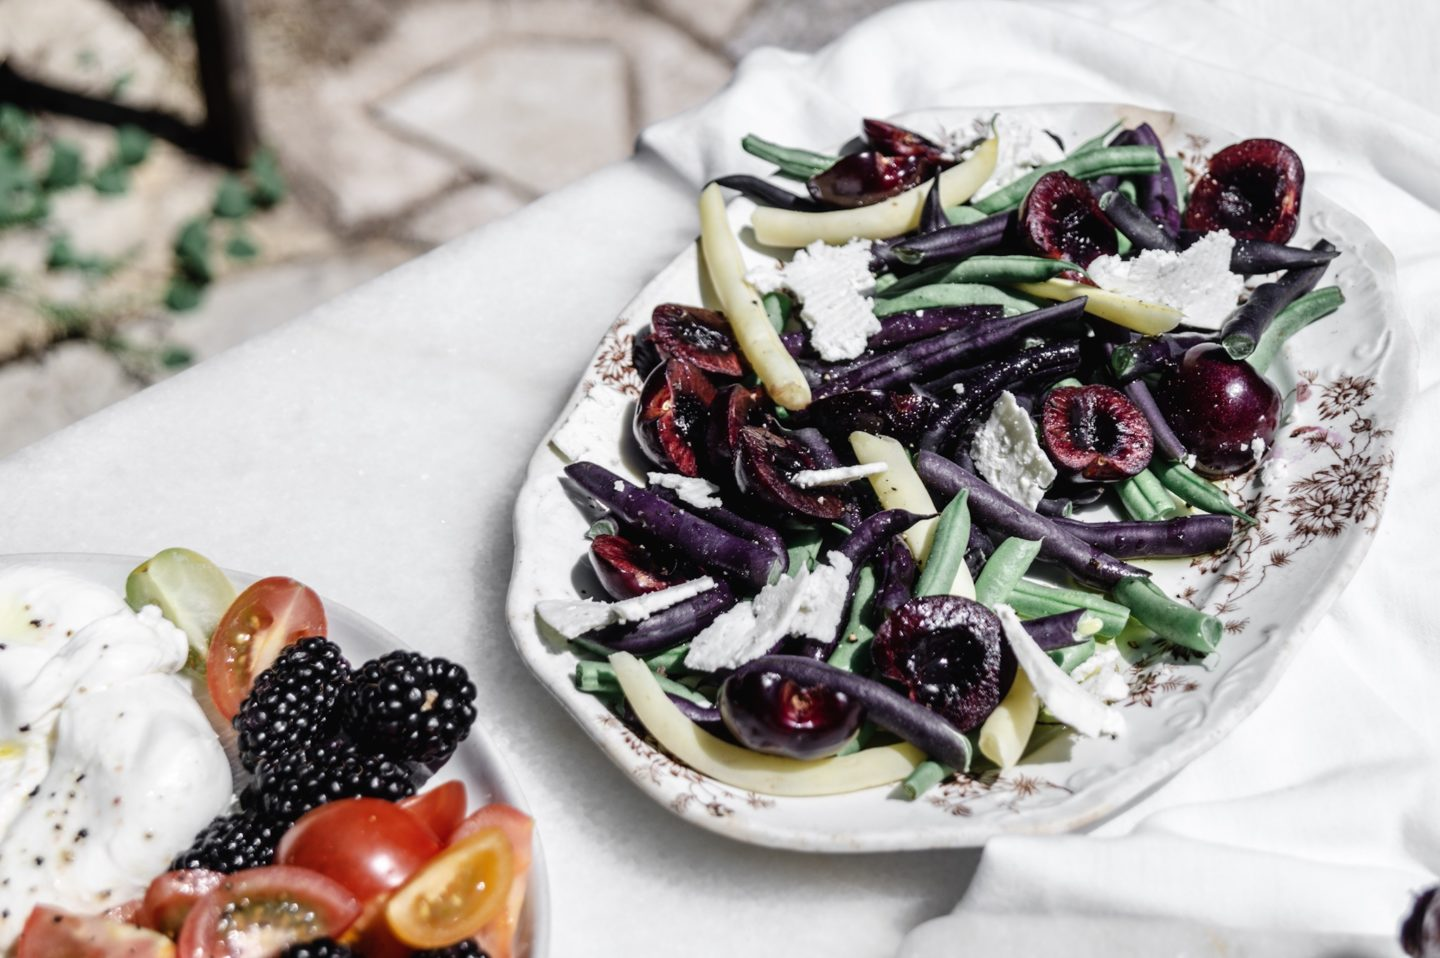 Multi-color snap bean summer salad with sweet dark cherries.